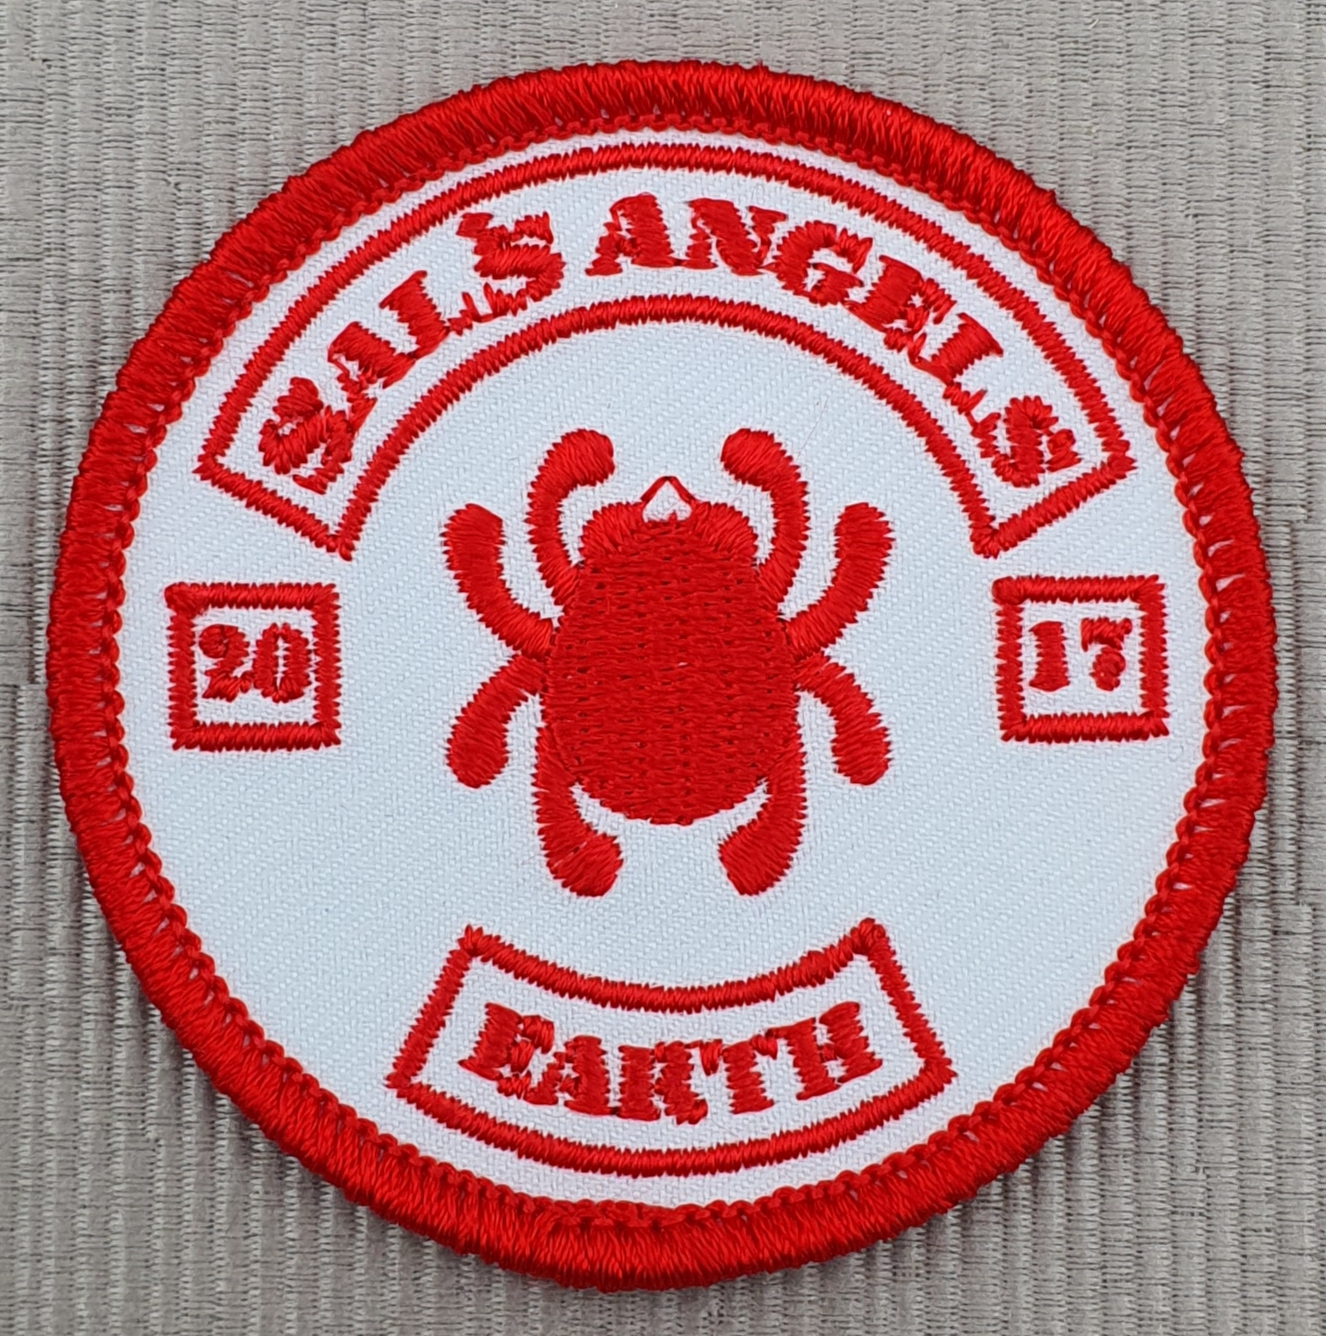 Spyderco Sals Angels patch